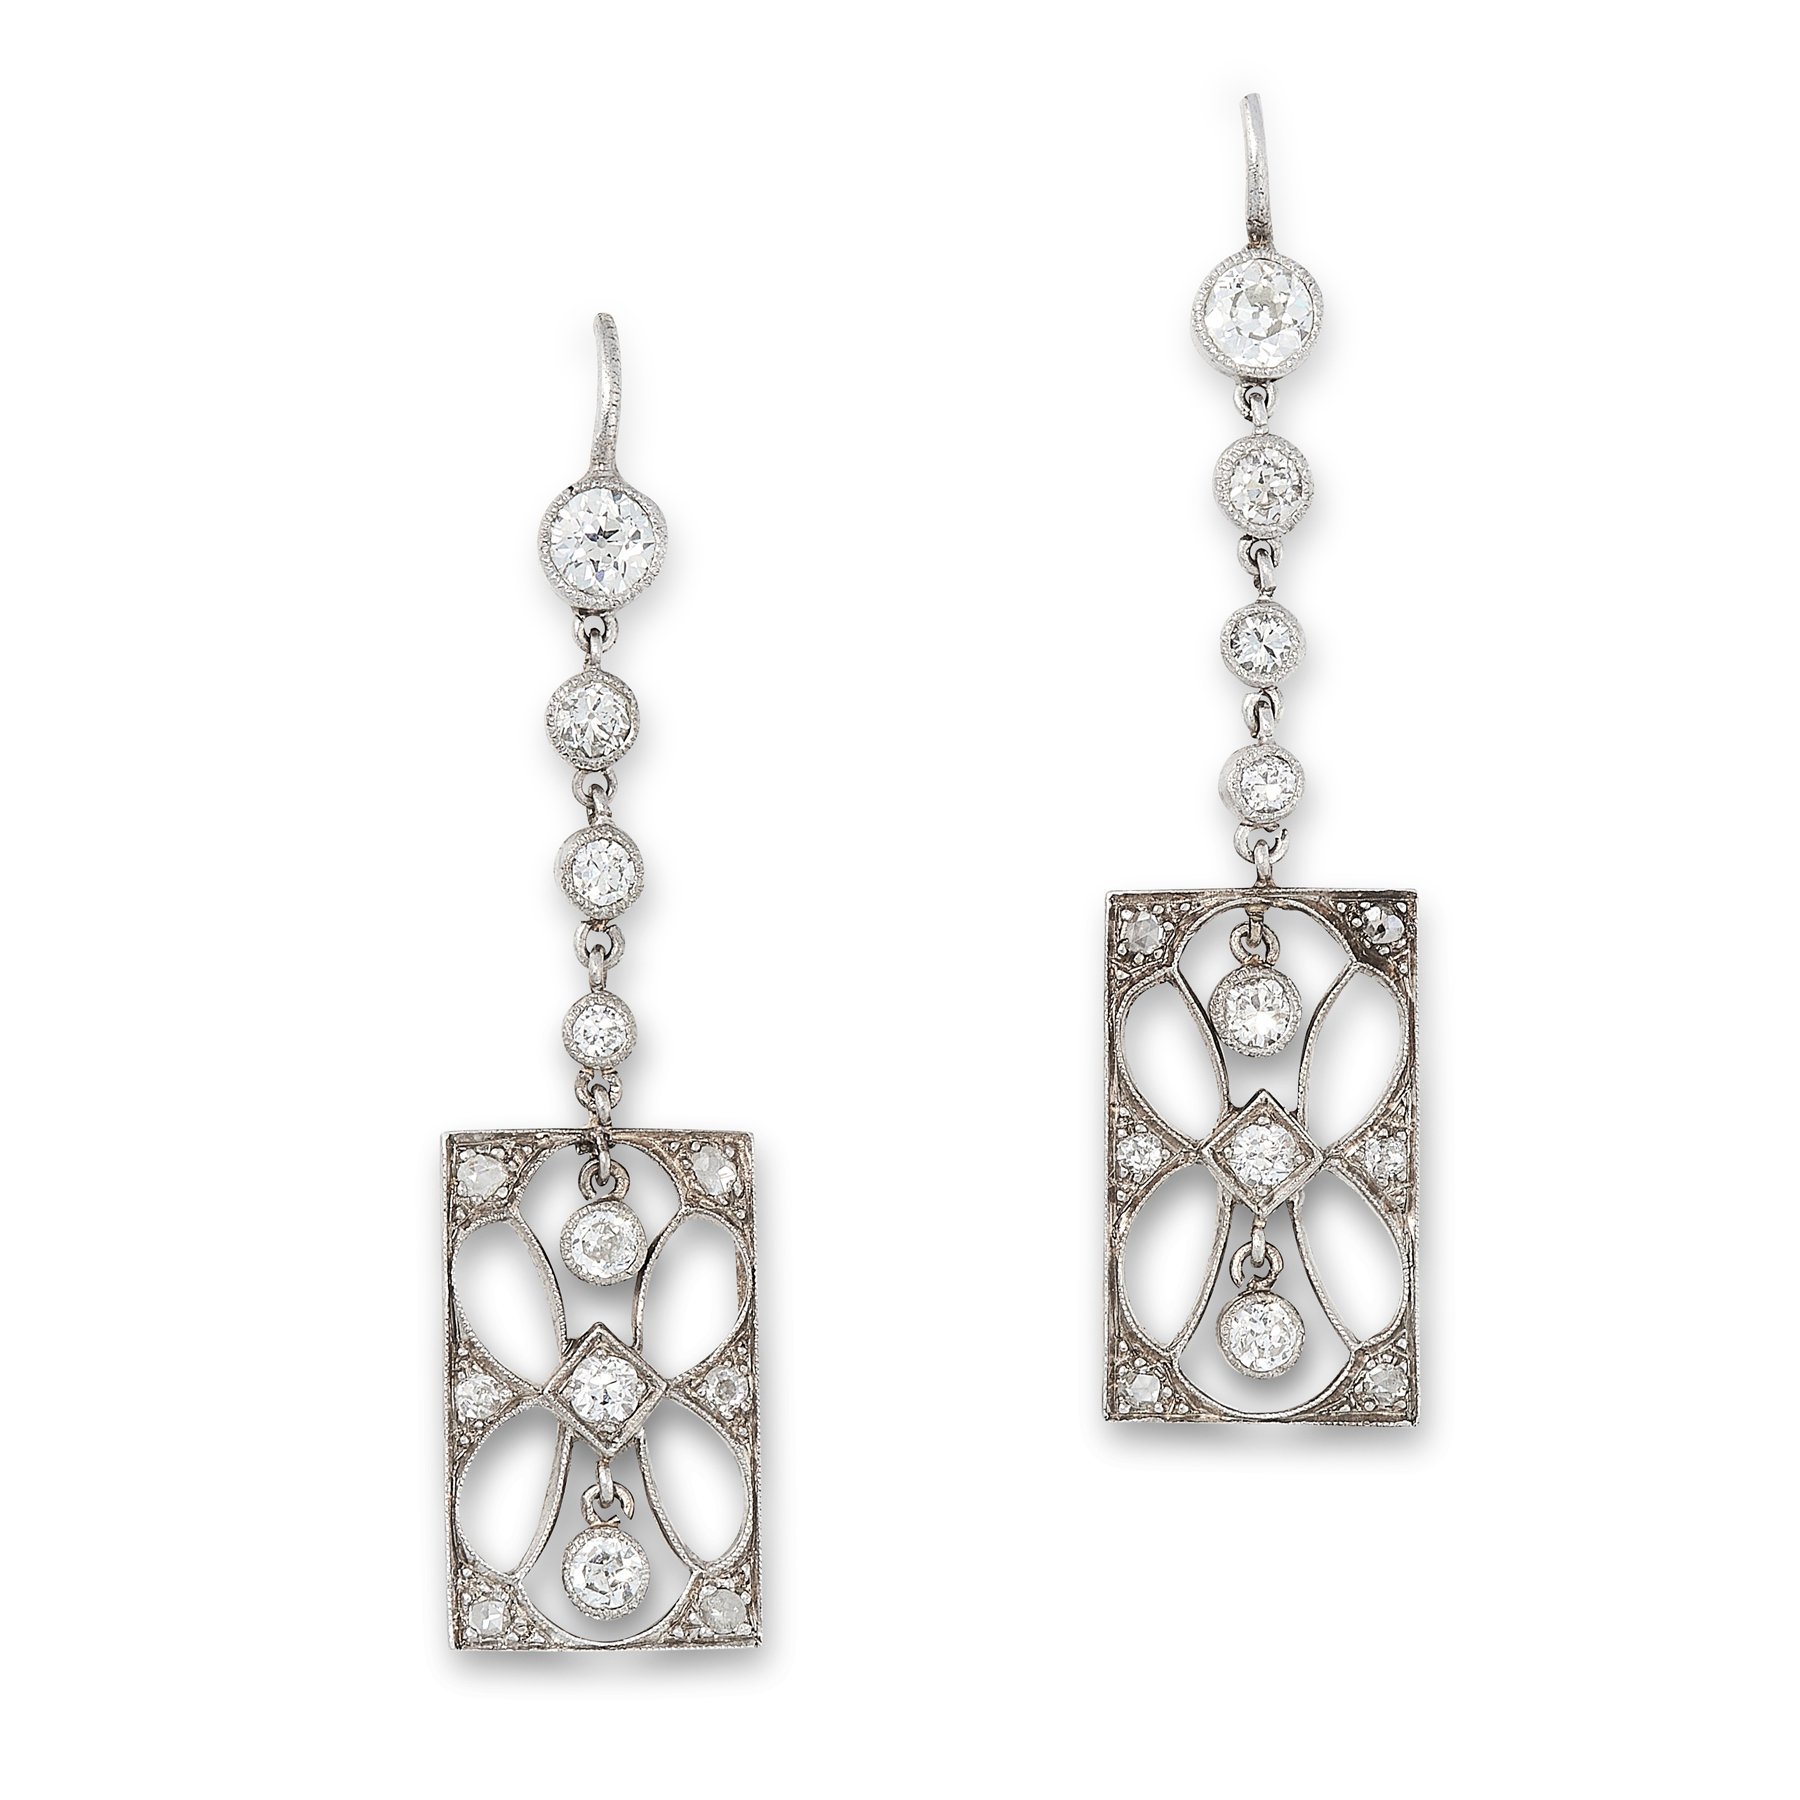 A PAIR OF ART DECO DIAMOND DROP EARRINGS, EARLY 20TH CENTURY the rectangular openwork body of each